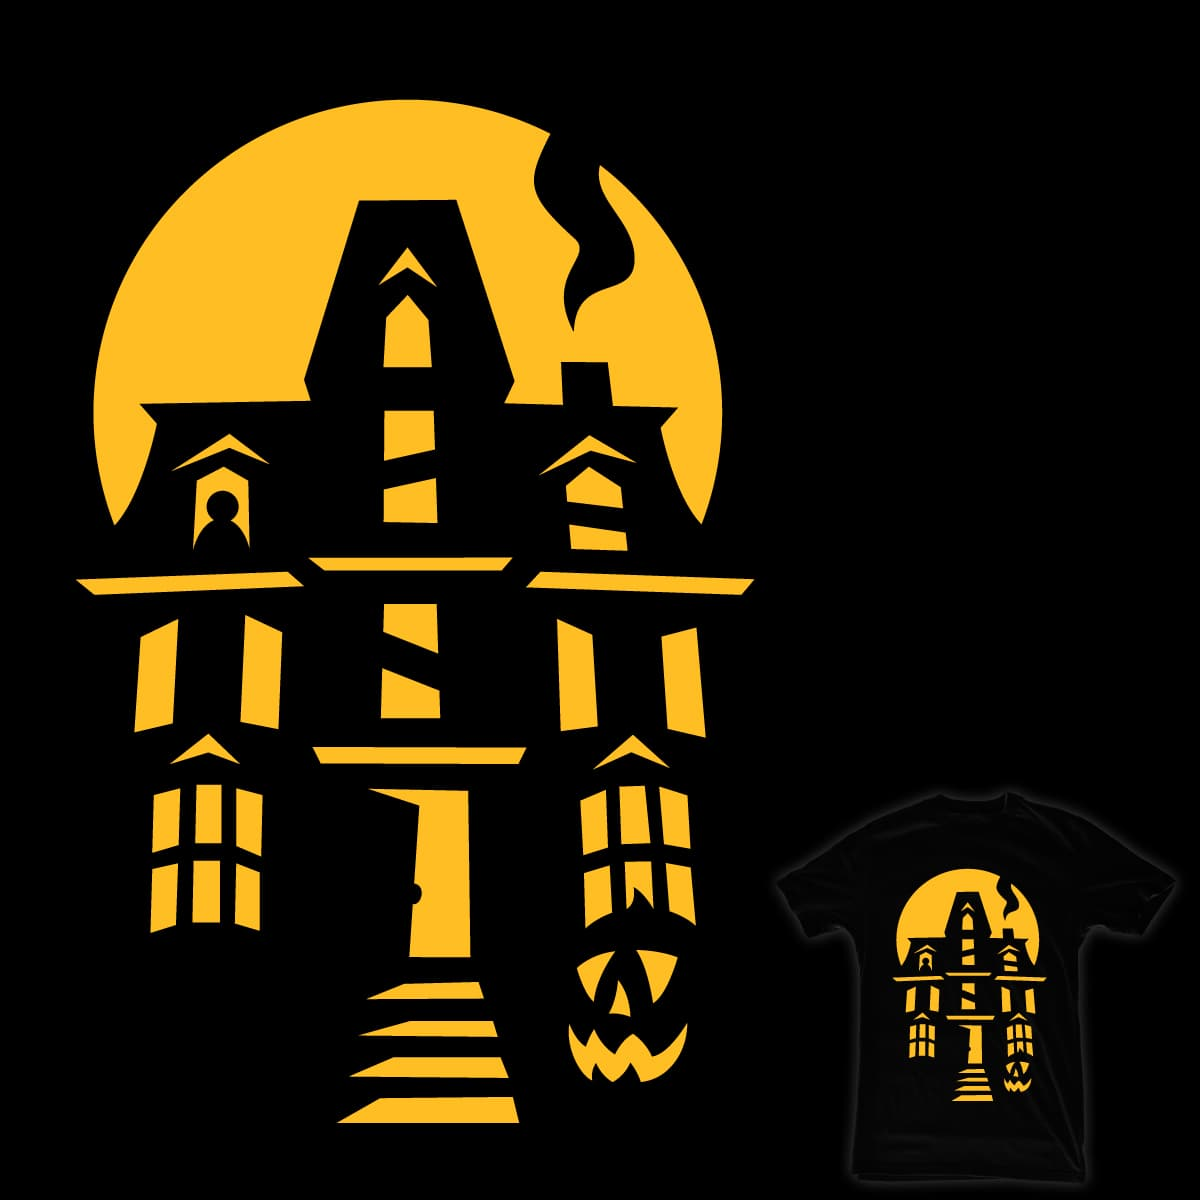 Totally Not Haunted by Maegnus on Threadless